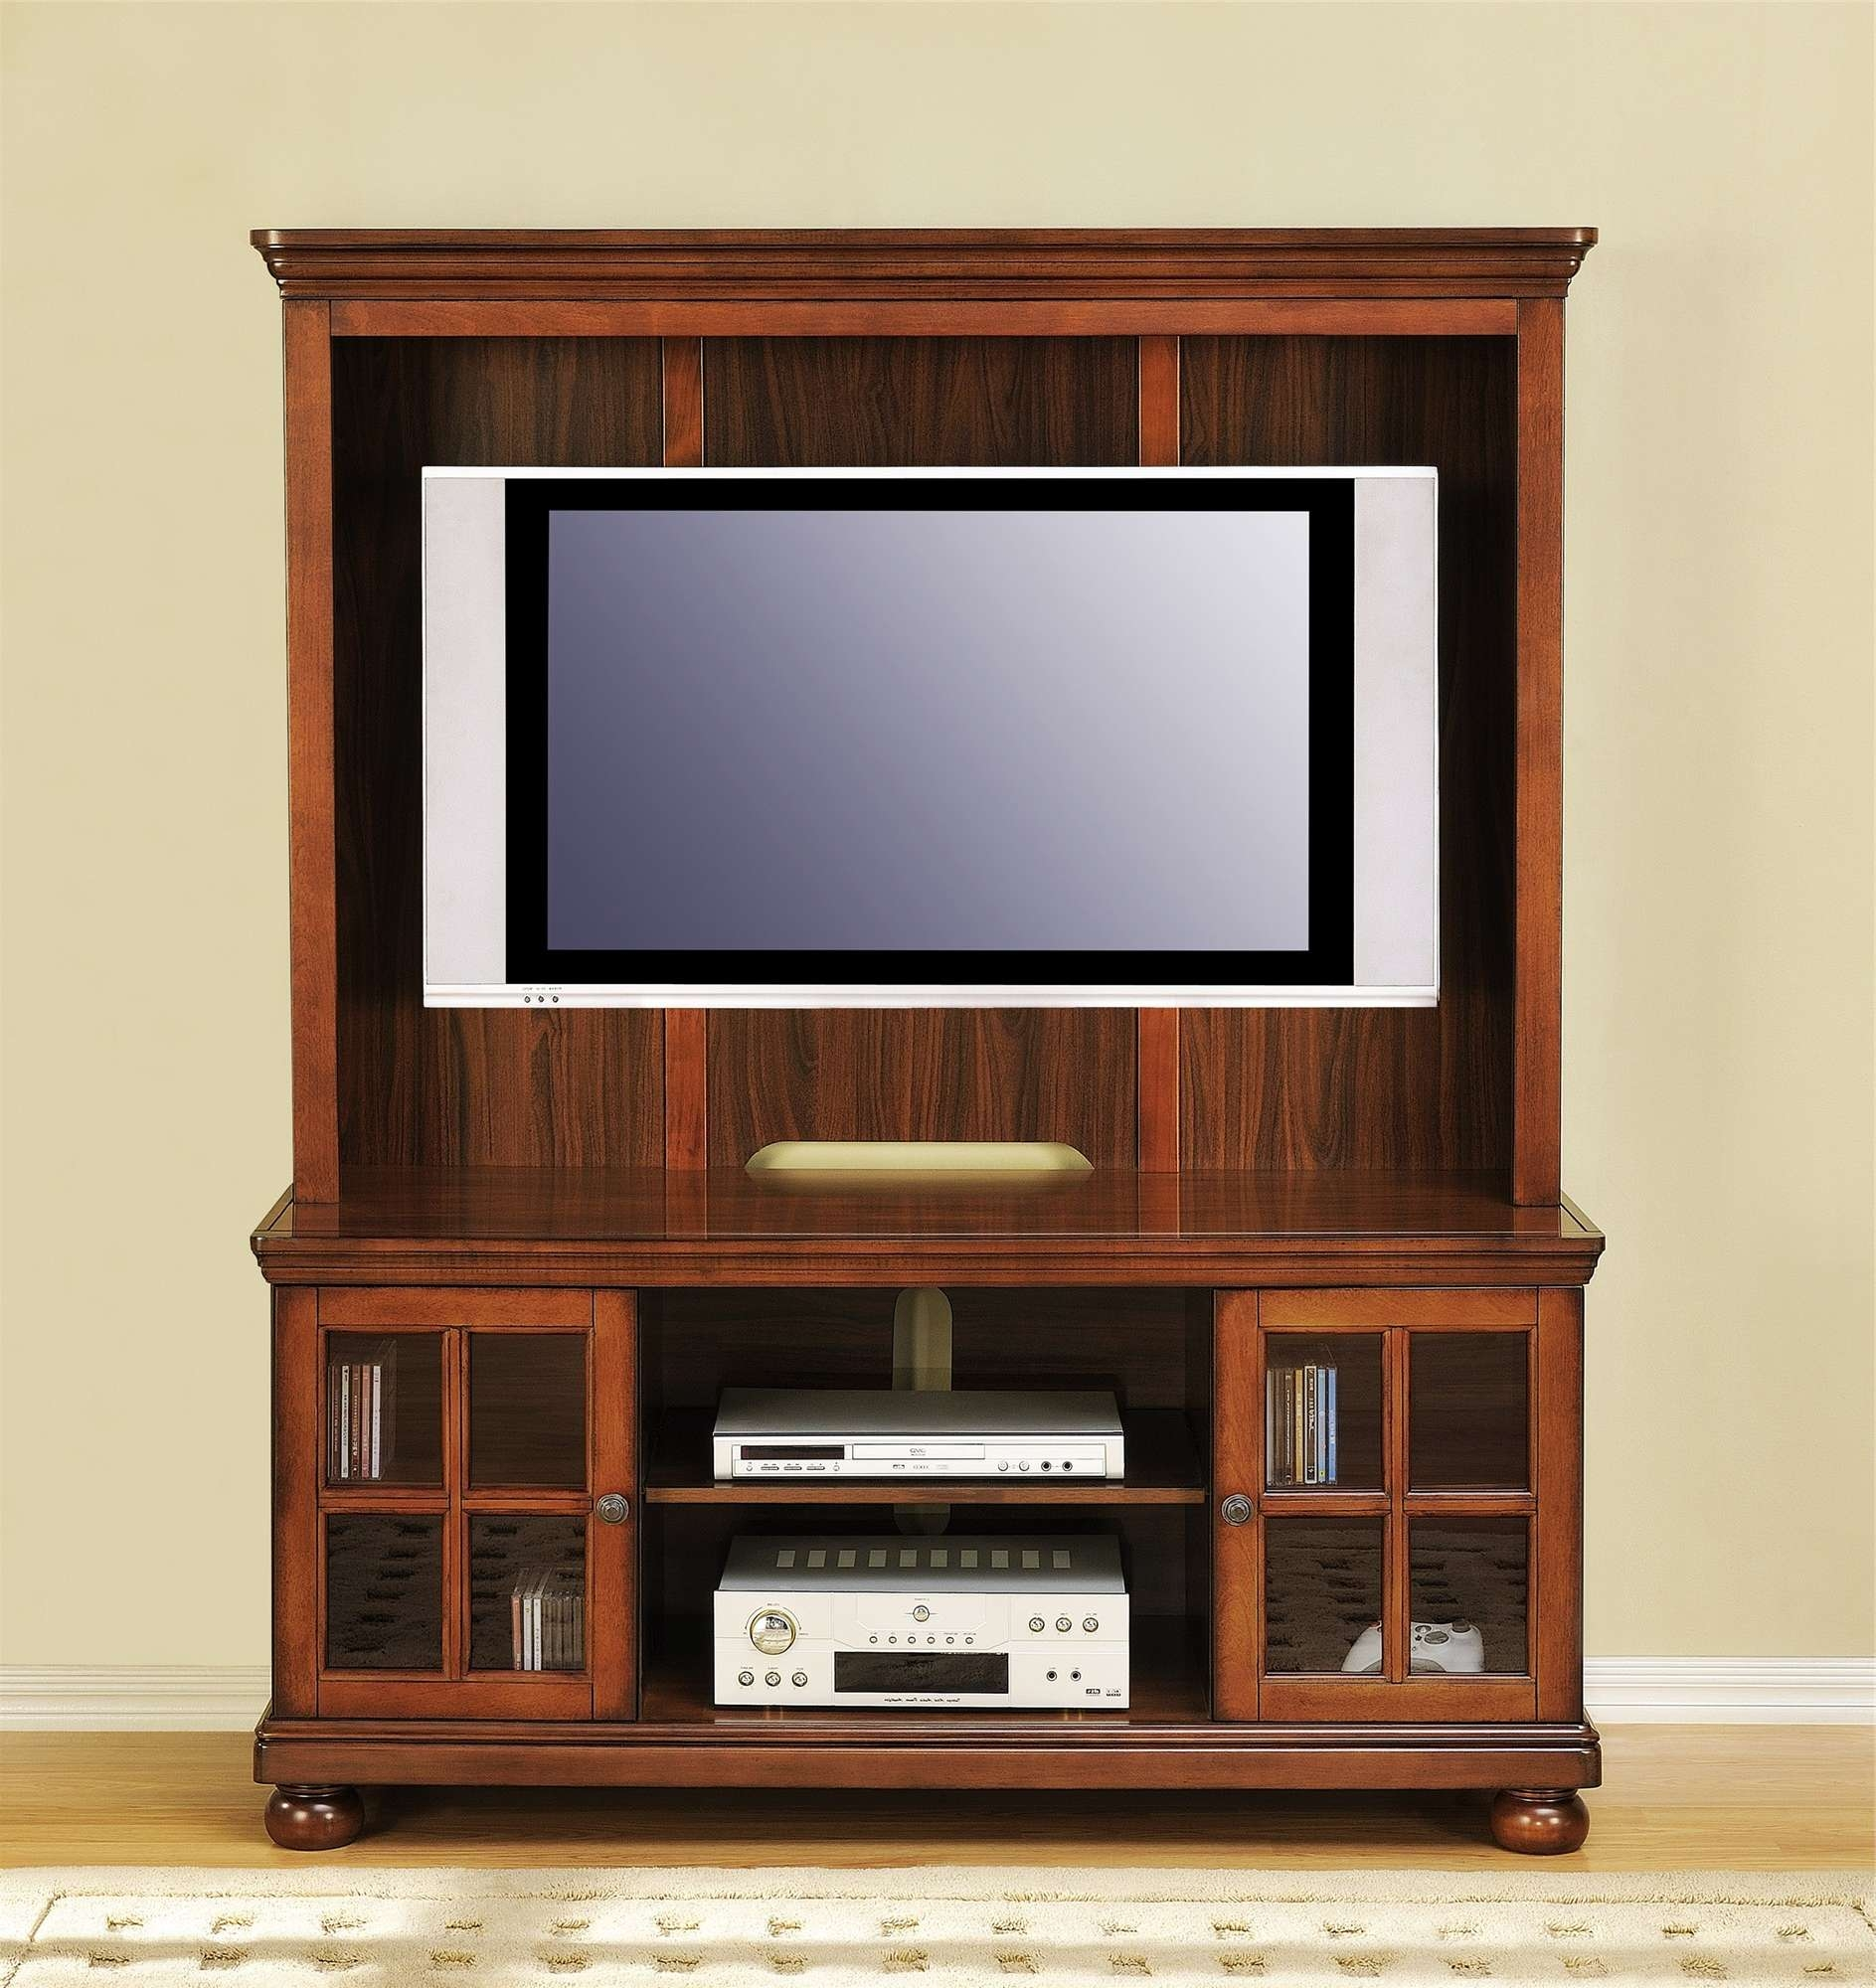 Wood Tv Stand With Glass Doors Images – Doors Design Ideas Intended For Wooden Tv Stands And Cabinets (View 10 of 15)